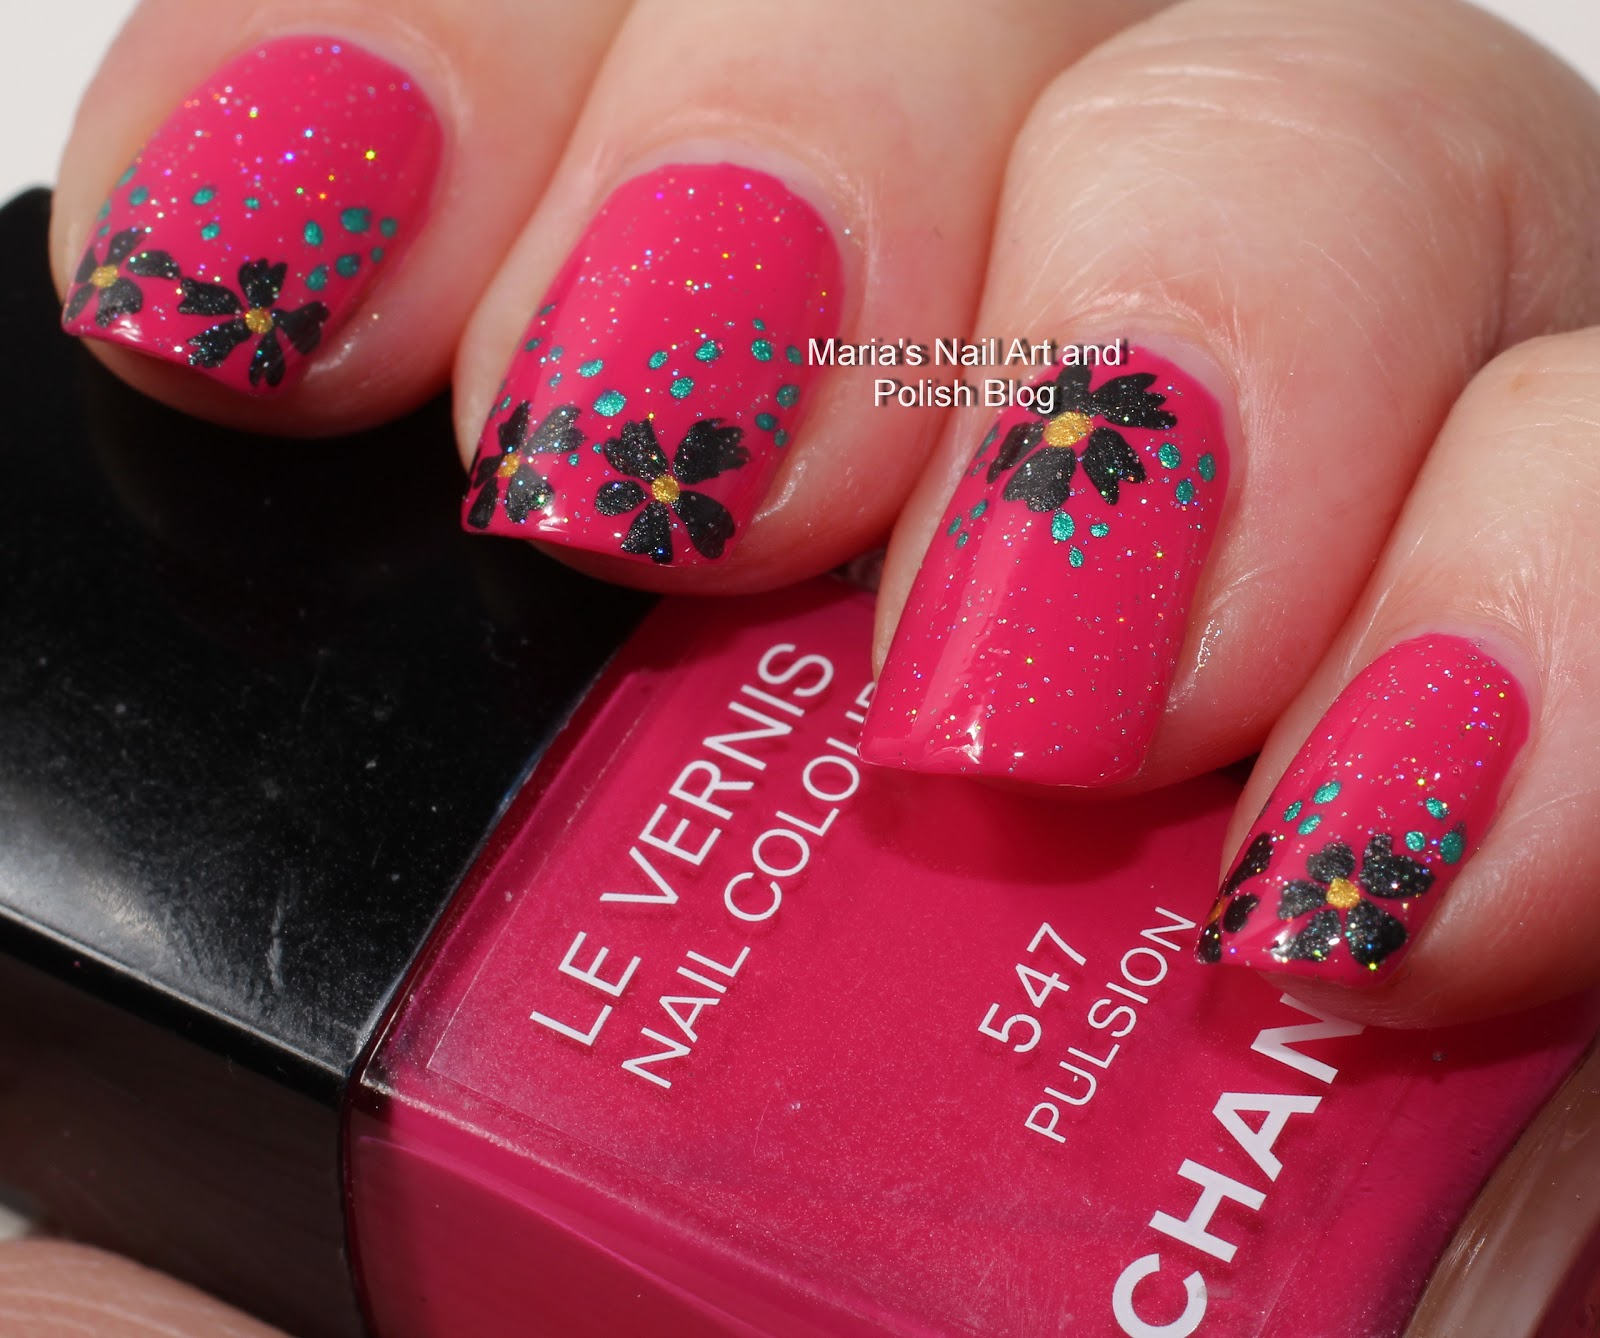 Marias Nail Art And Polish Blog Subtle Floral Nail Art On: Marias Nail Art And Polish Blog: Black Pulsion Flowers